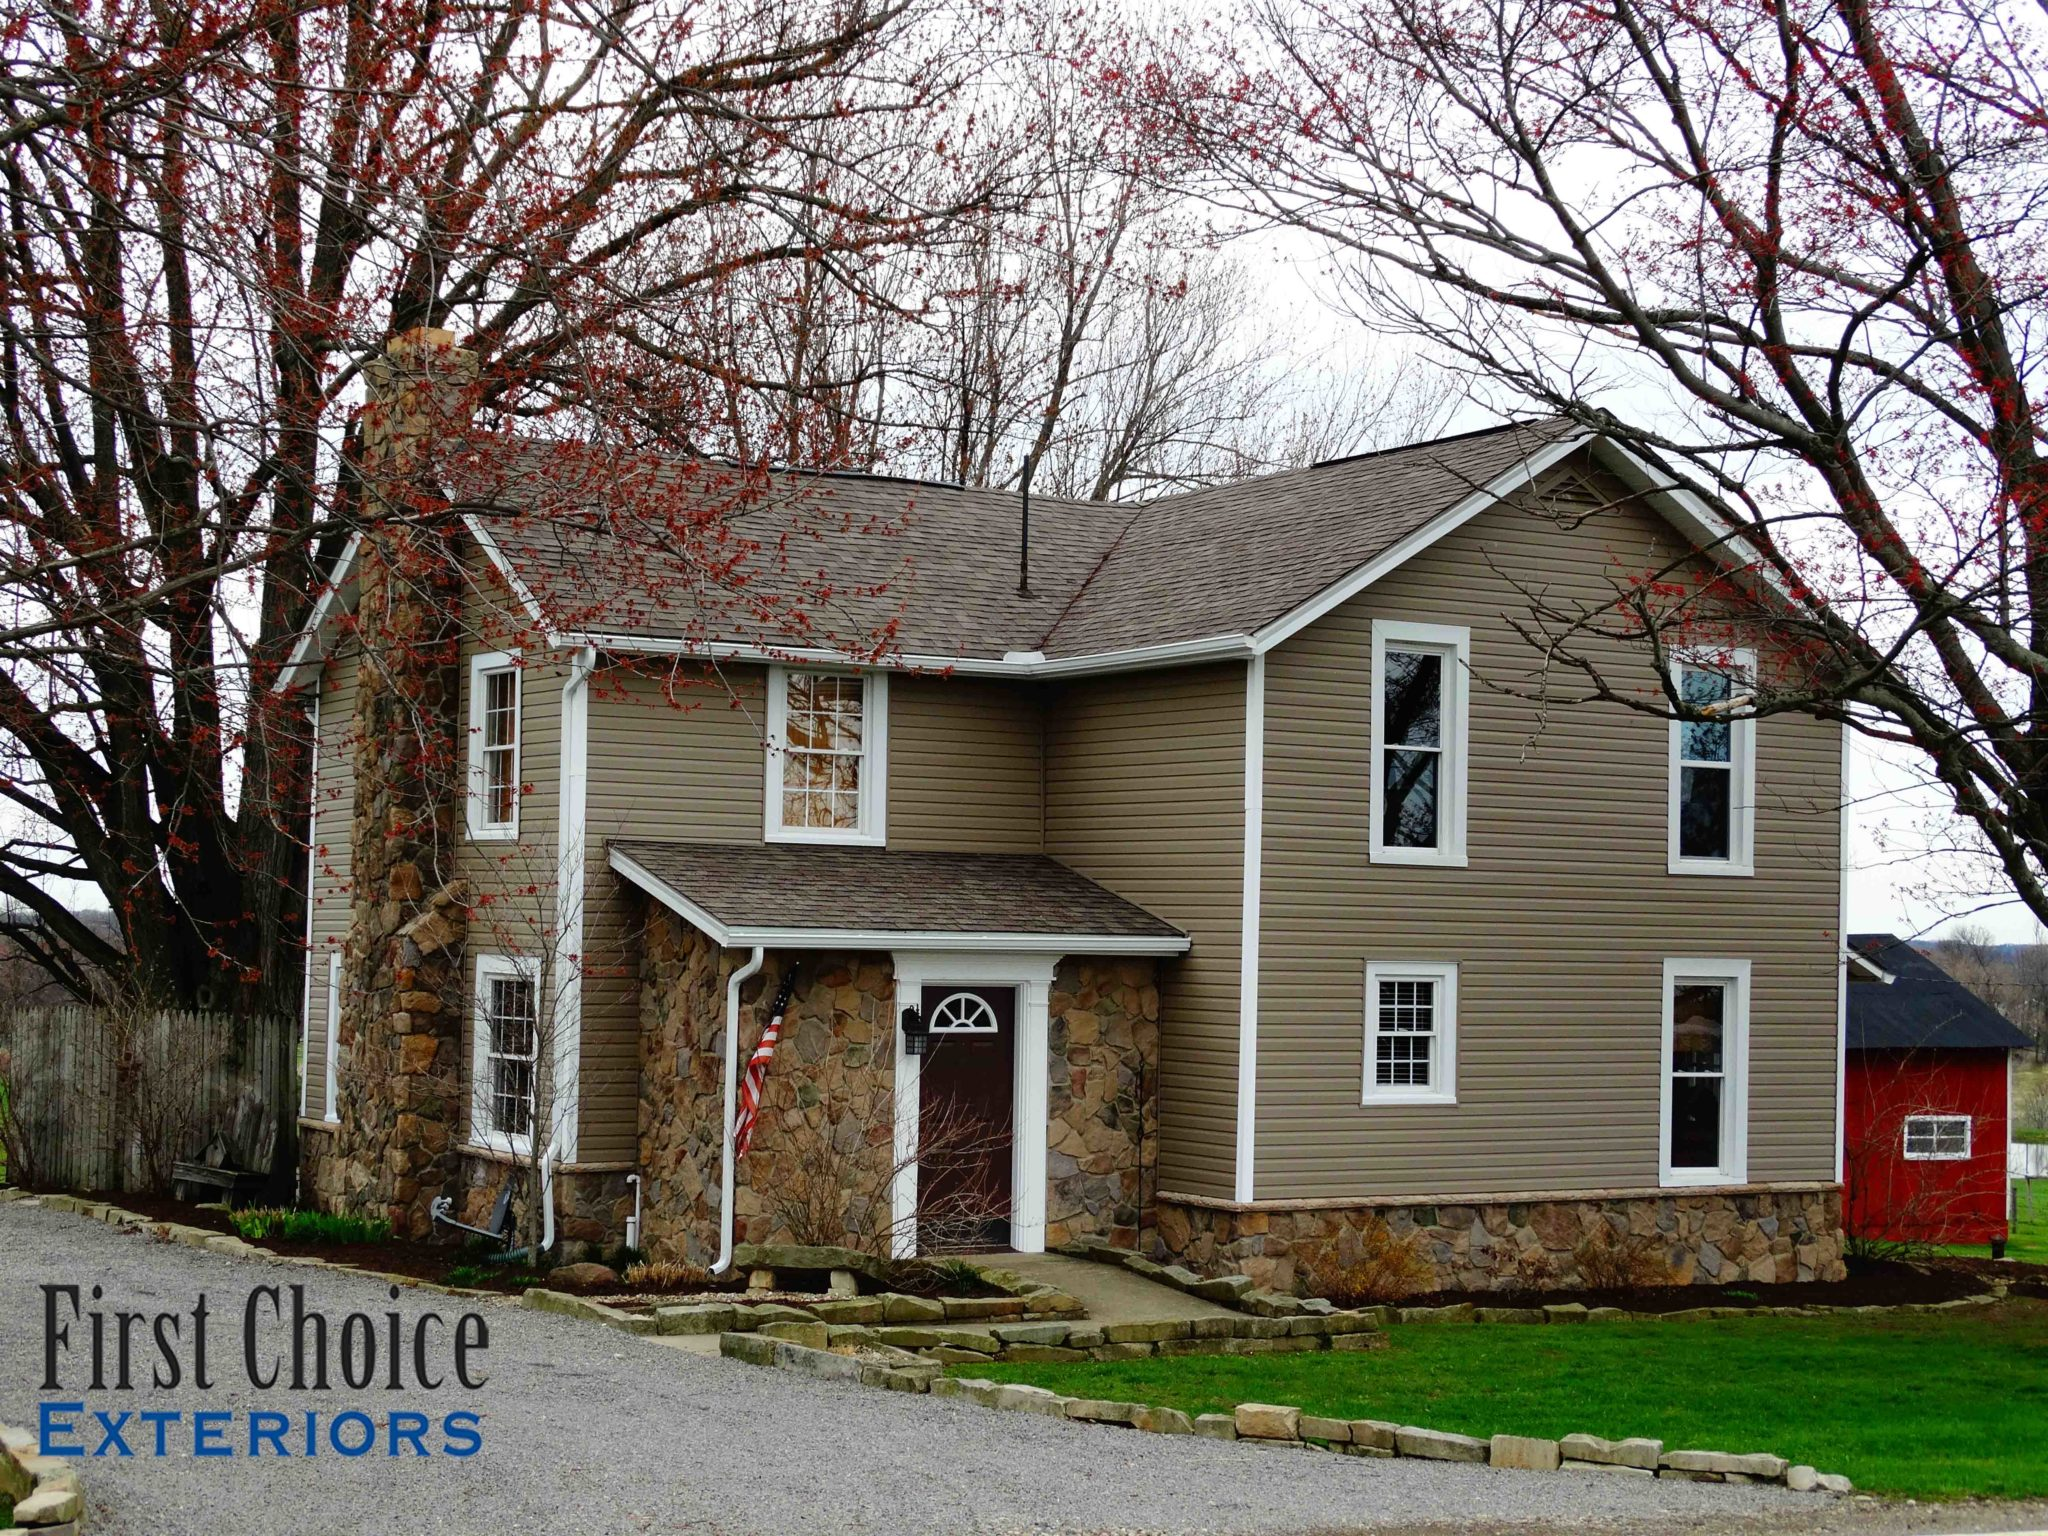 Home first choice exteriors quality exterior products - Quality home exteriors ...